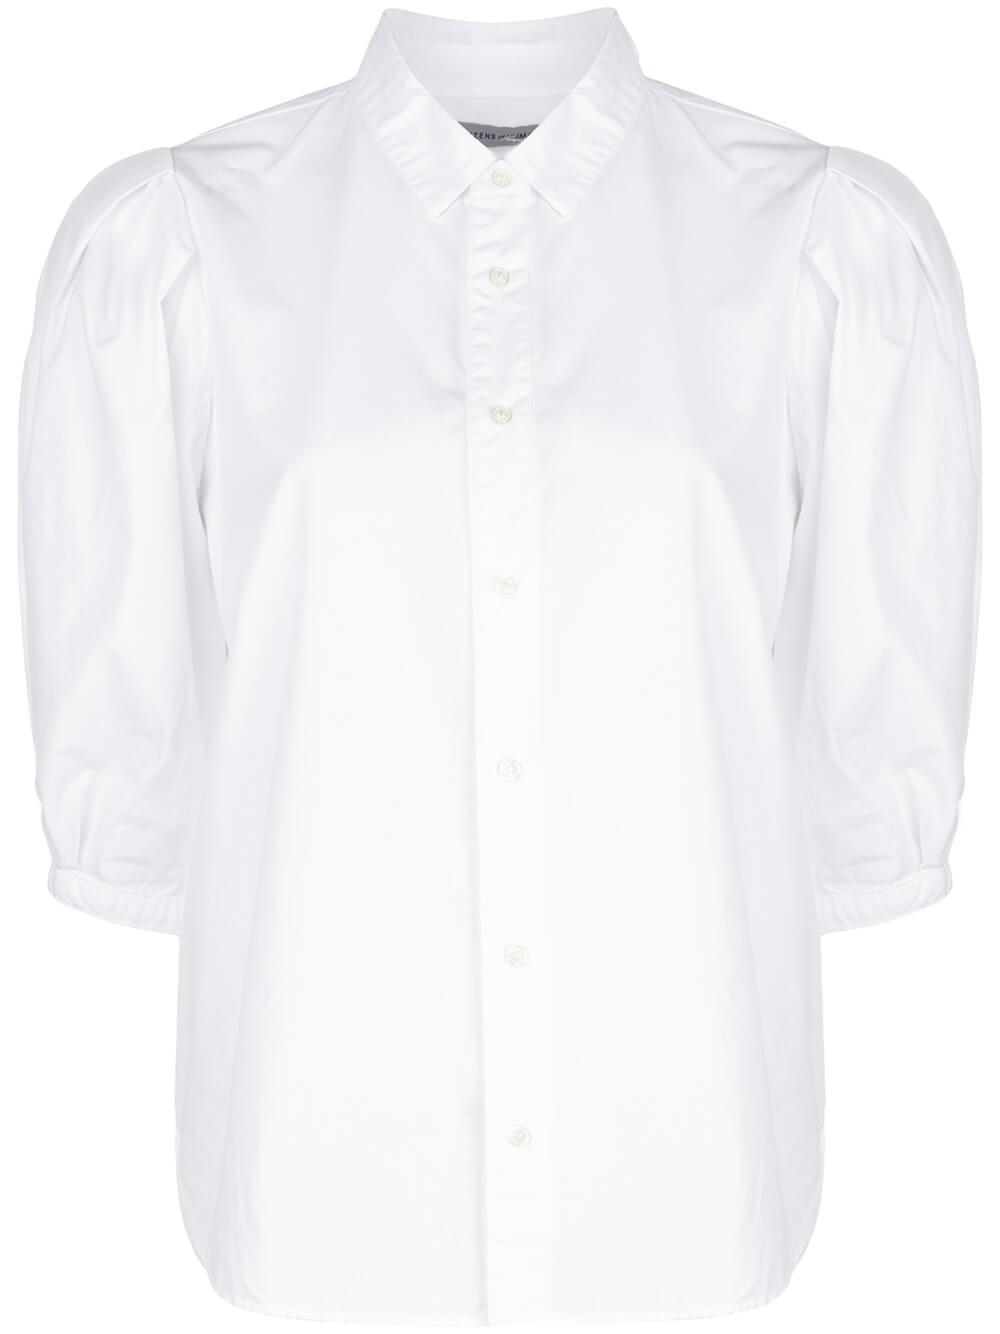 Ines Pleated Puff Sleeve Buttonup Shirt Item # 9150-741